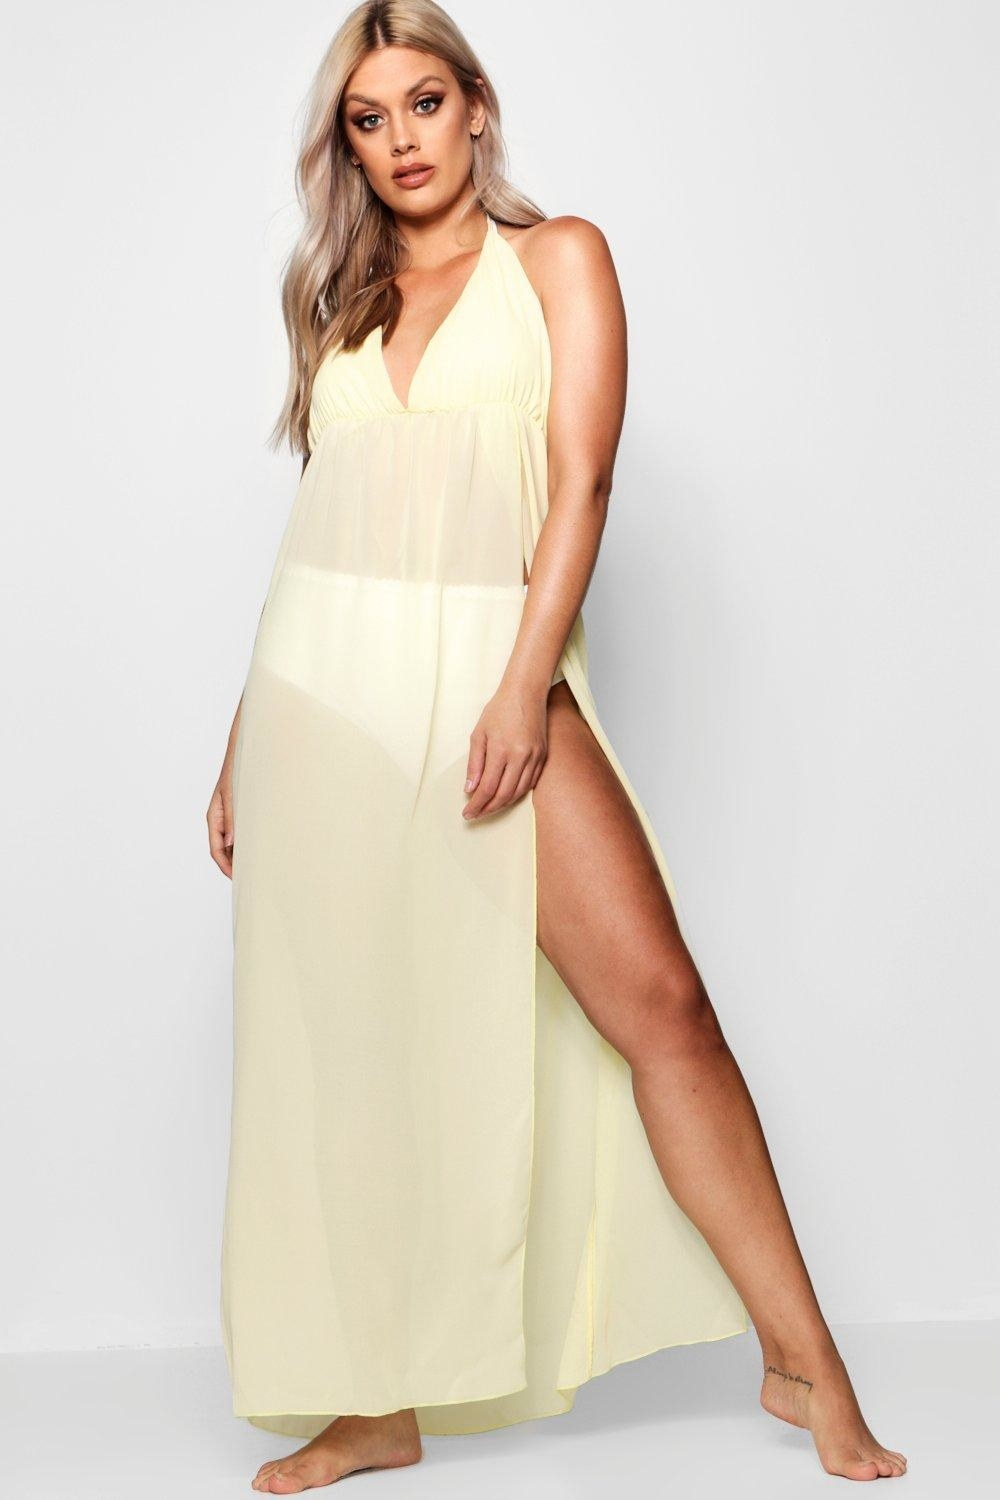 Price: $15 (originally $25; available in sizes 12-20 and in two colors)